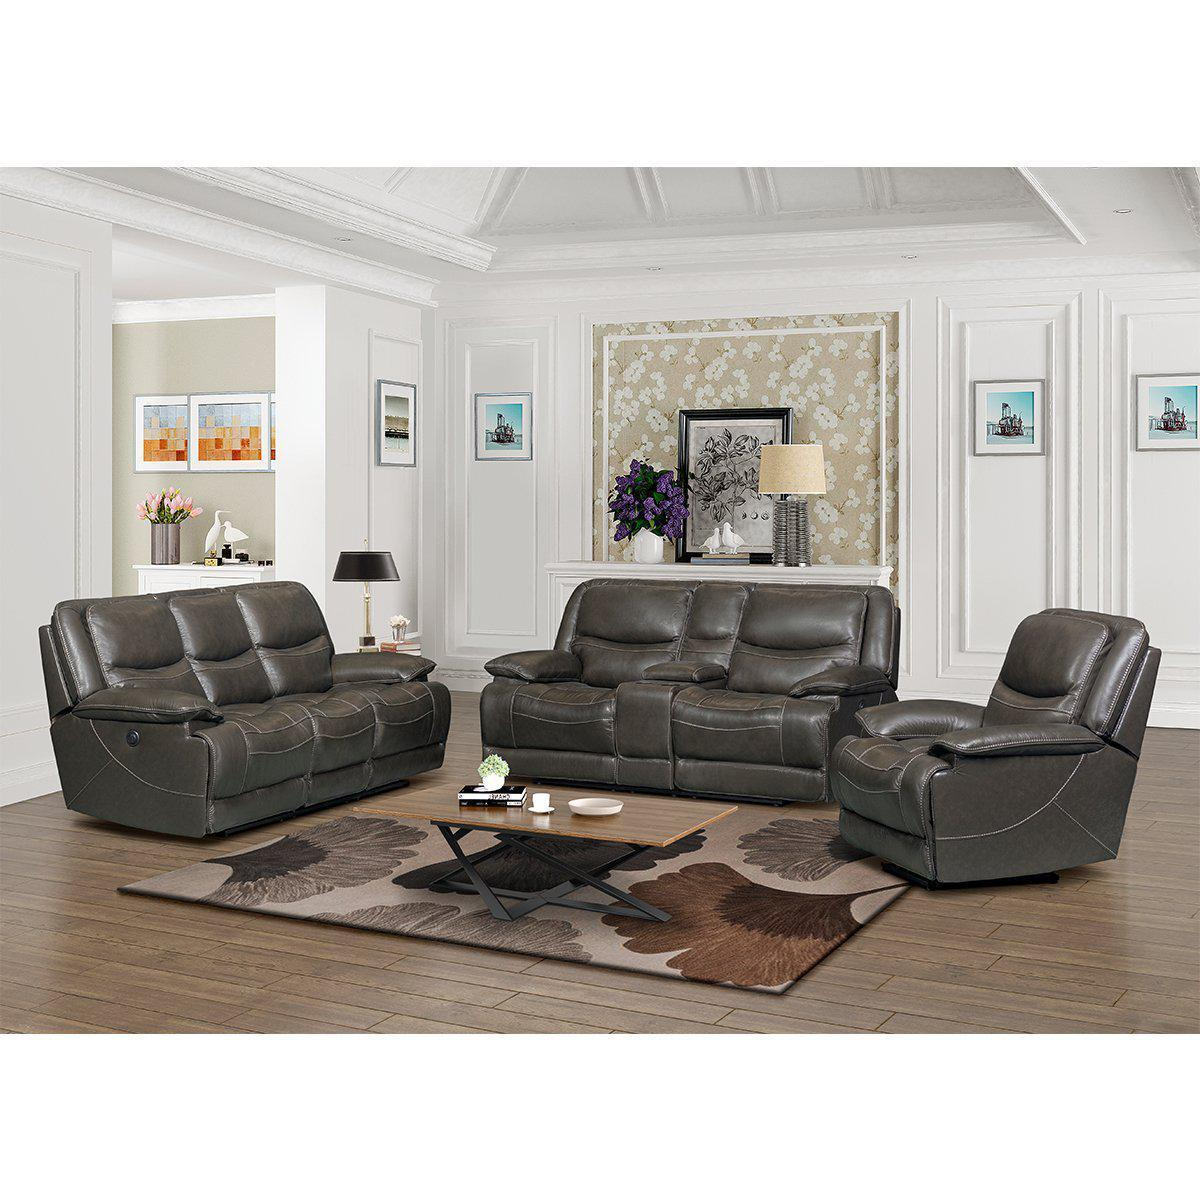 Alden Seatcraft Power Reclining Living Room Set